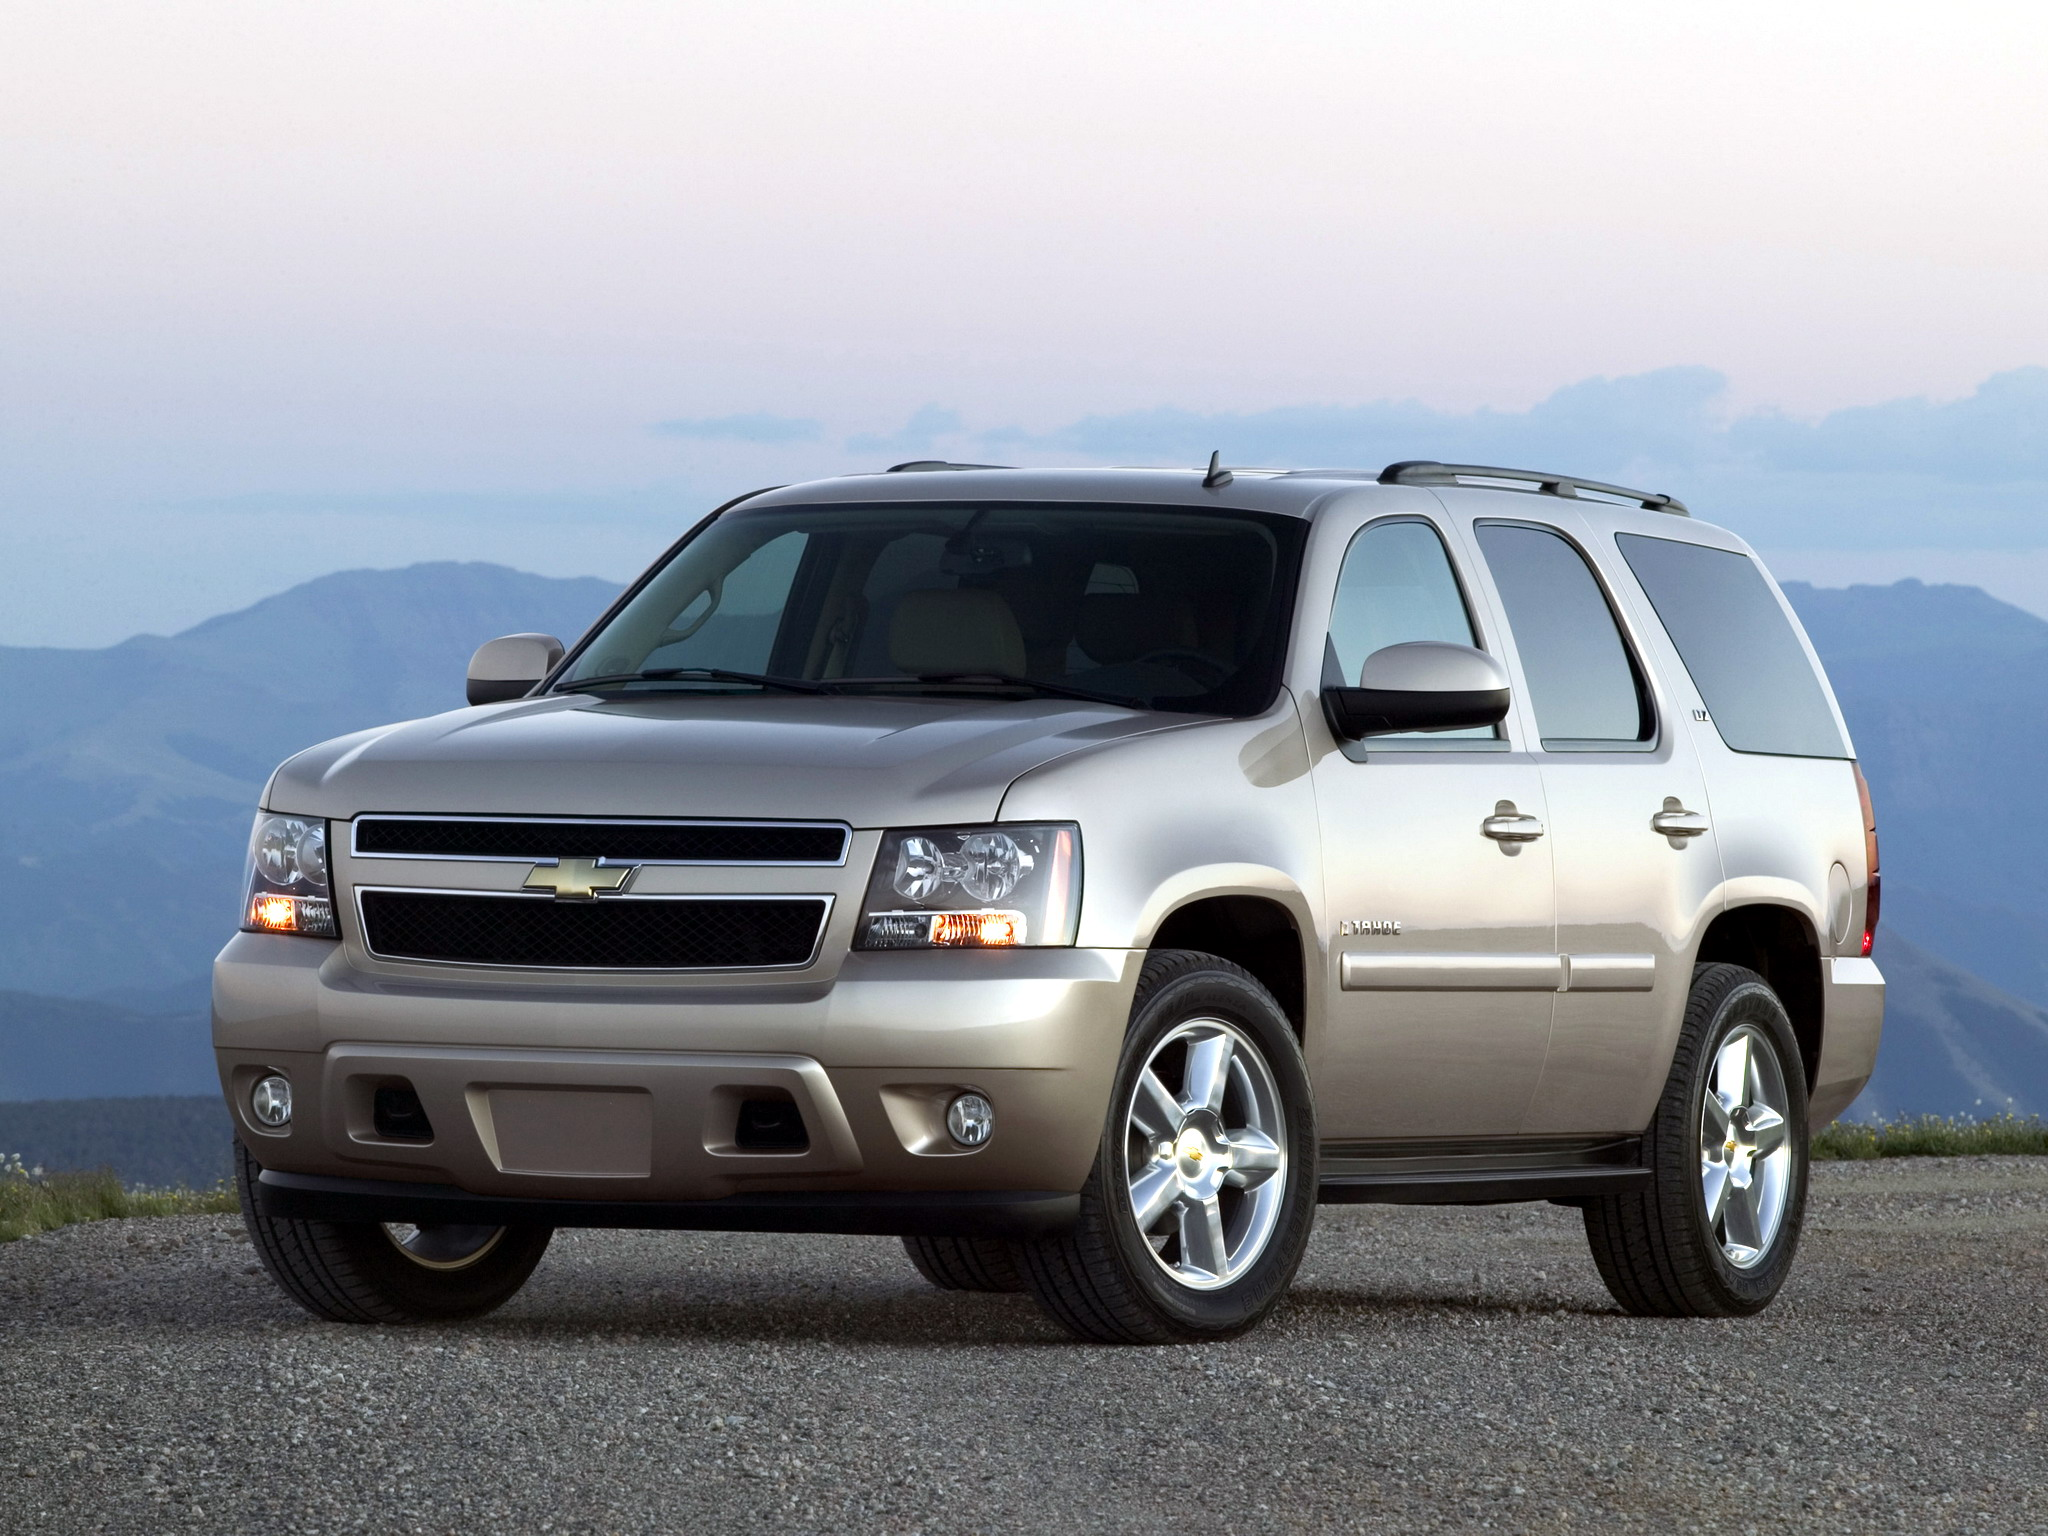 Pictures of chevrolet tahoe #10